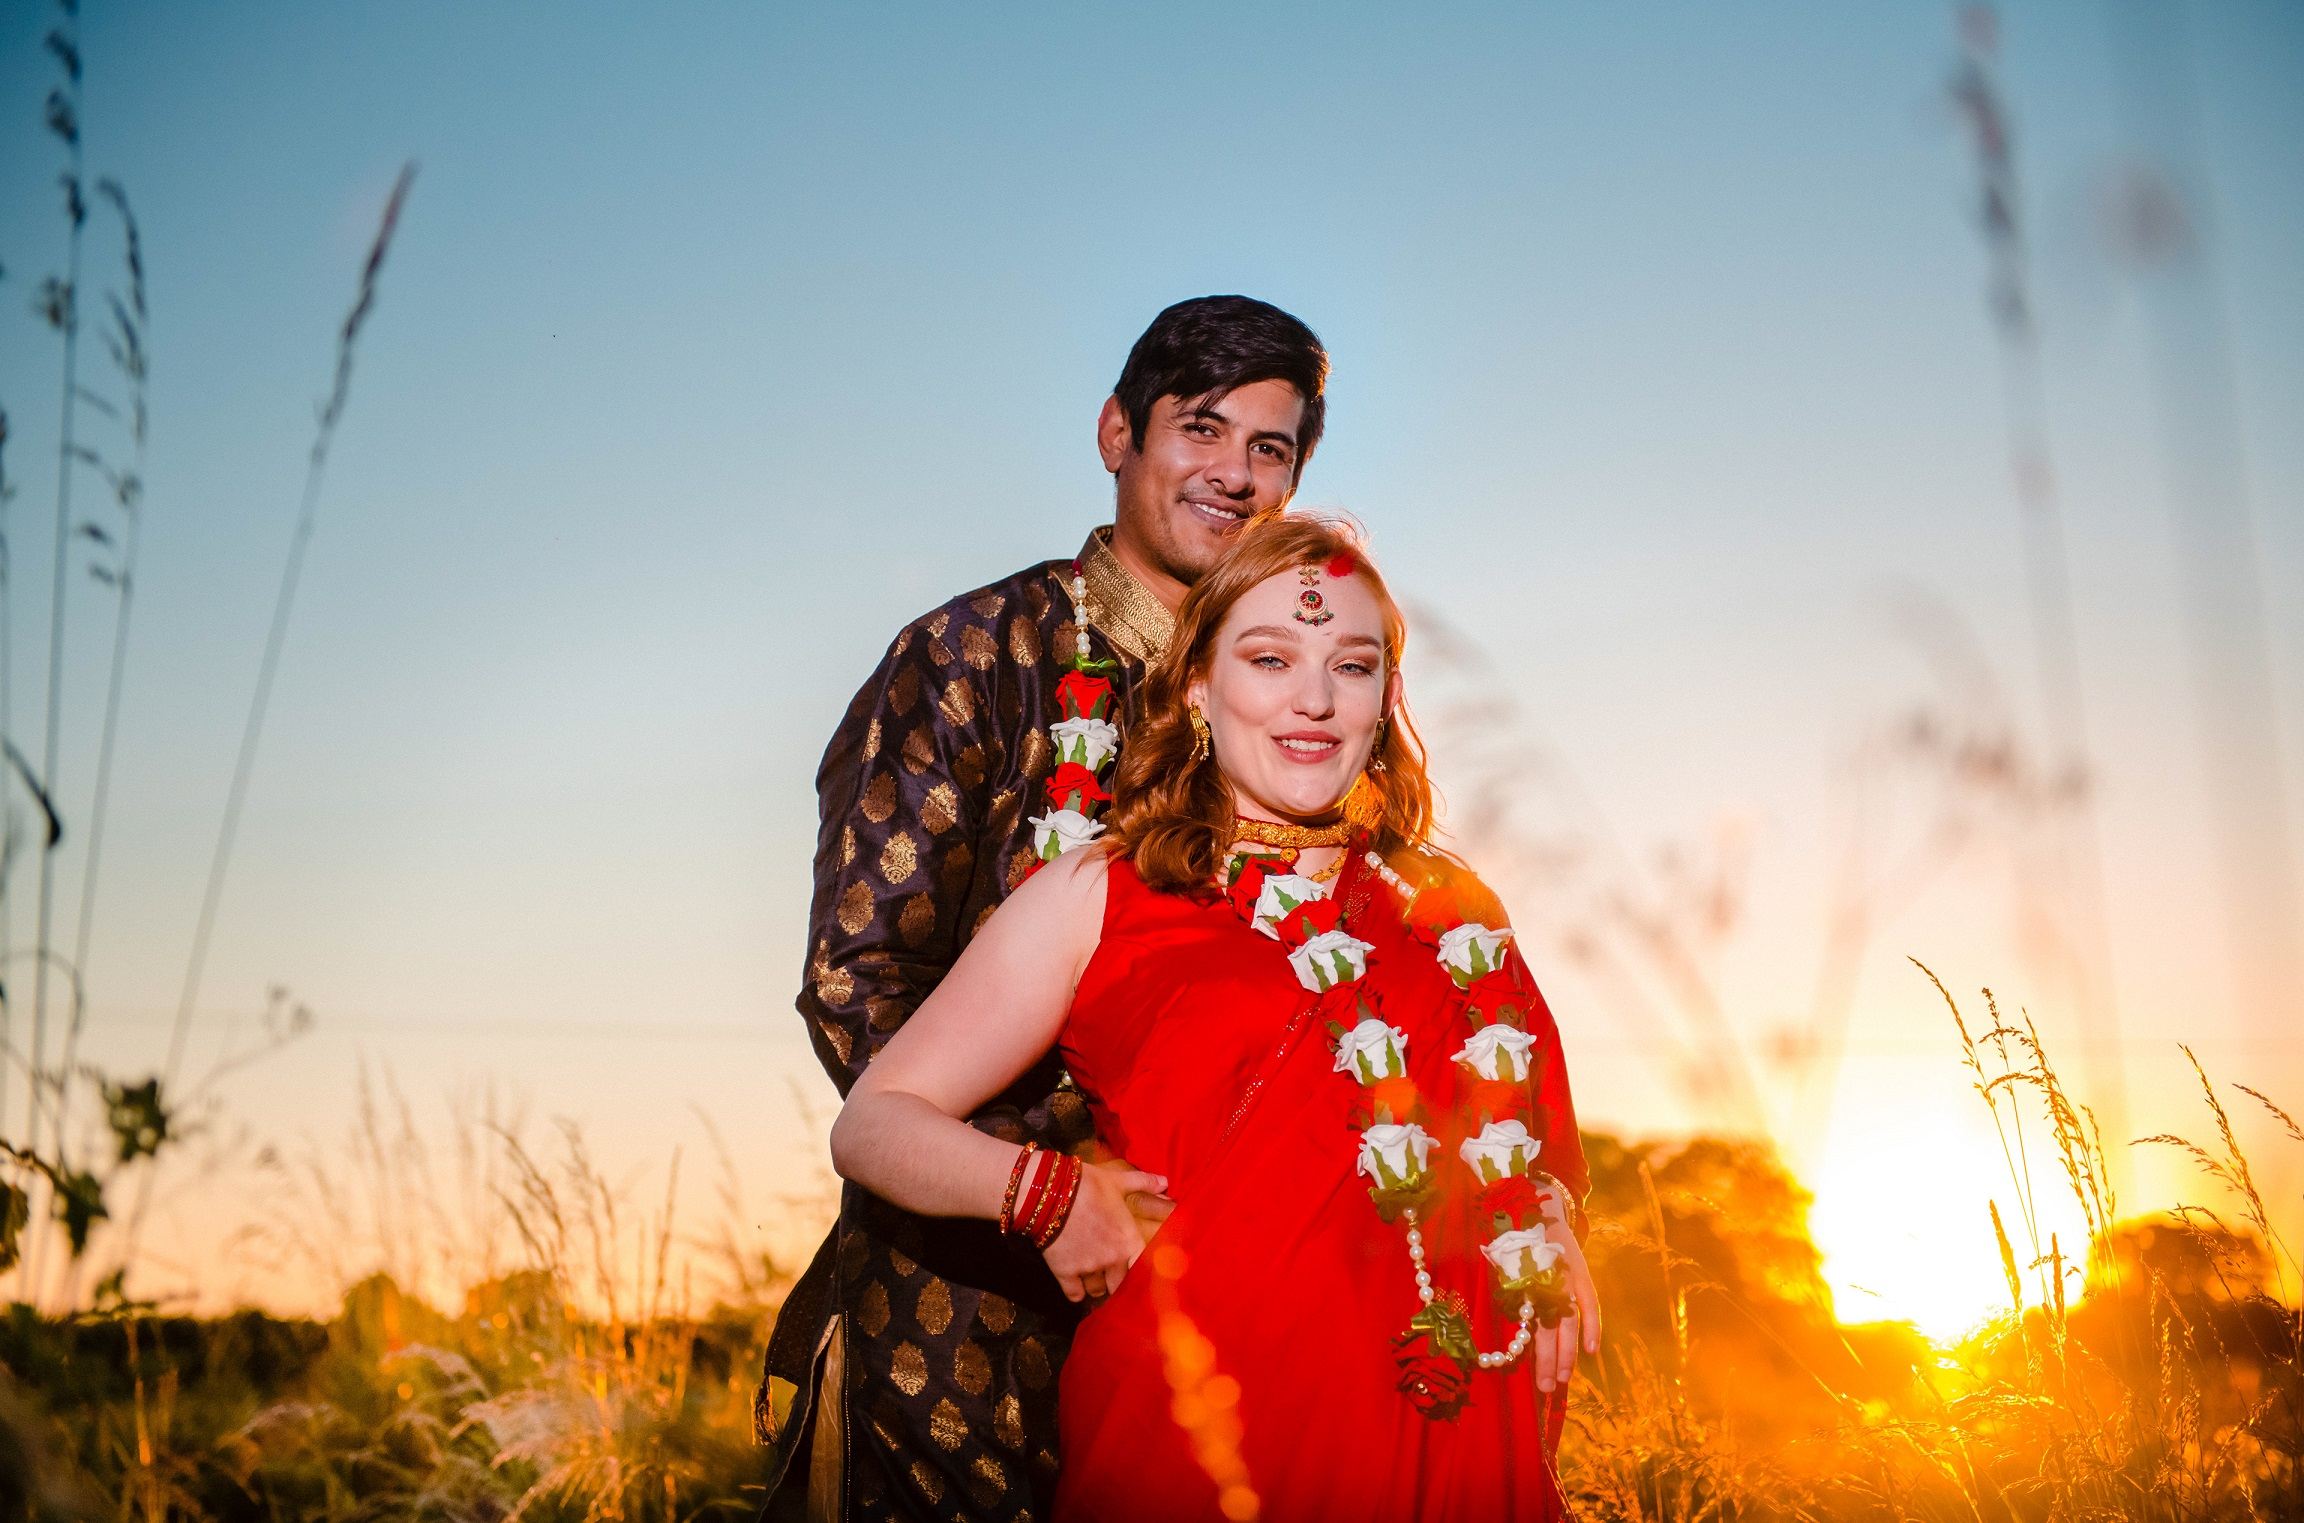 Dr. Neel and Catherine's Engagement - Ikonic Media Solutions